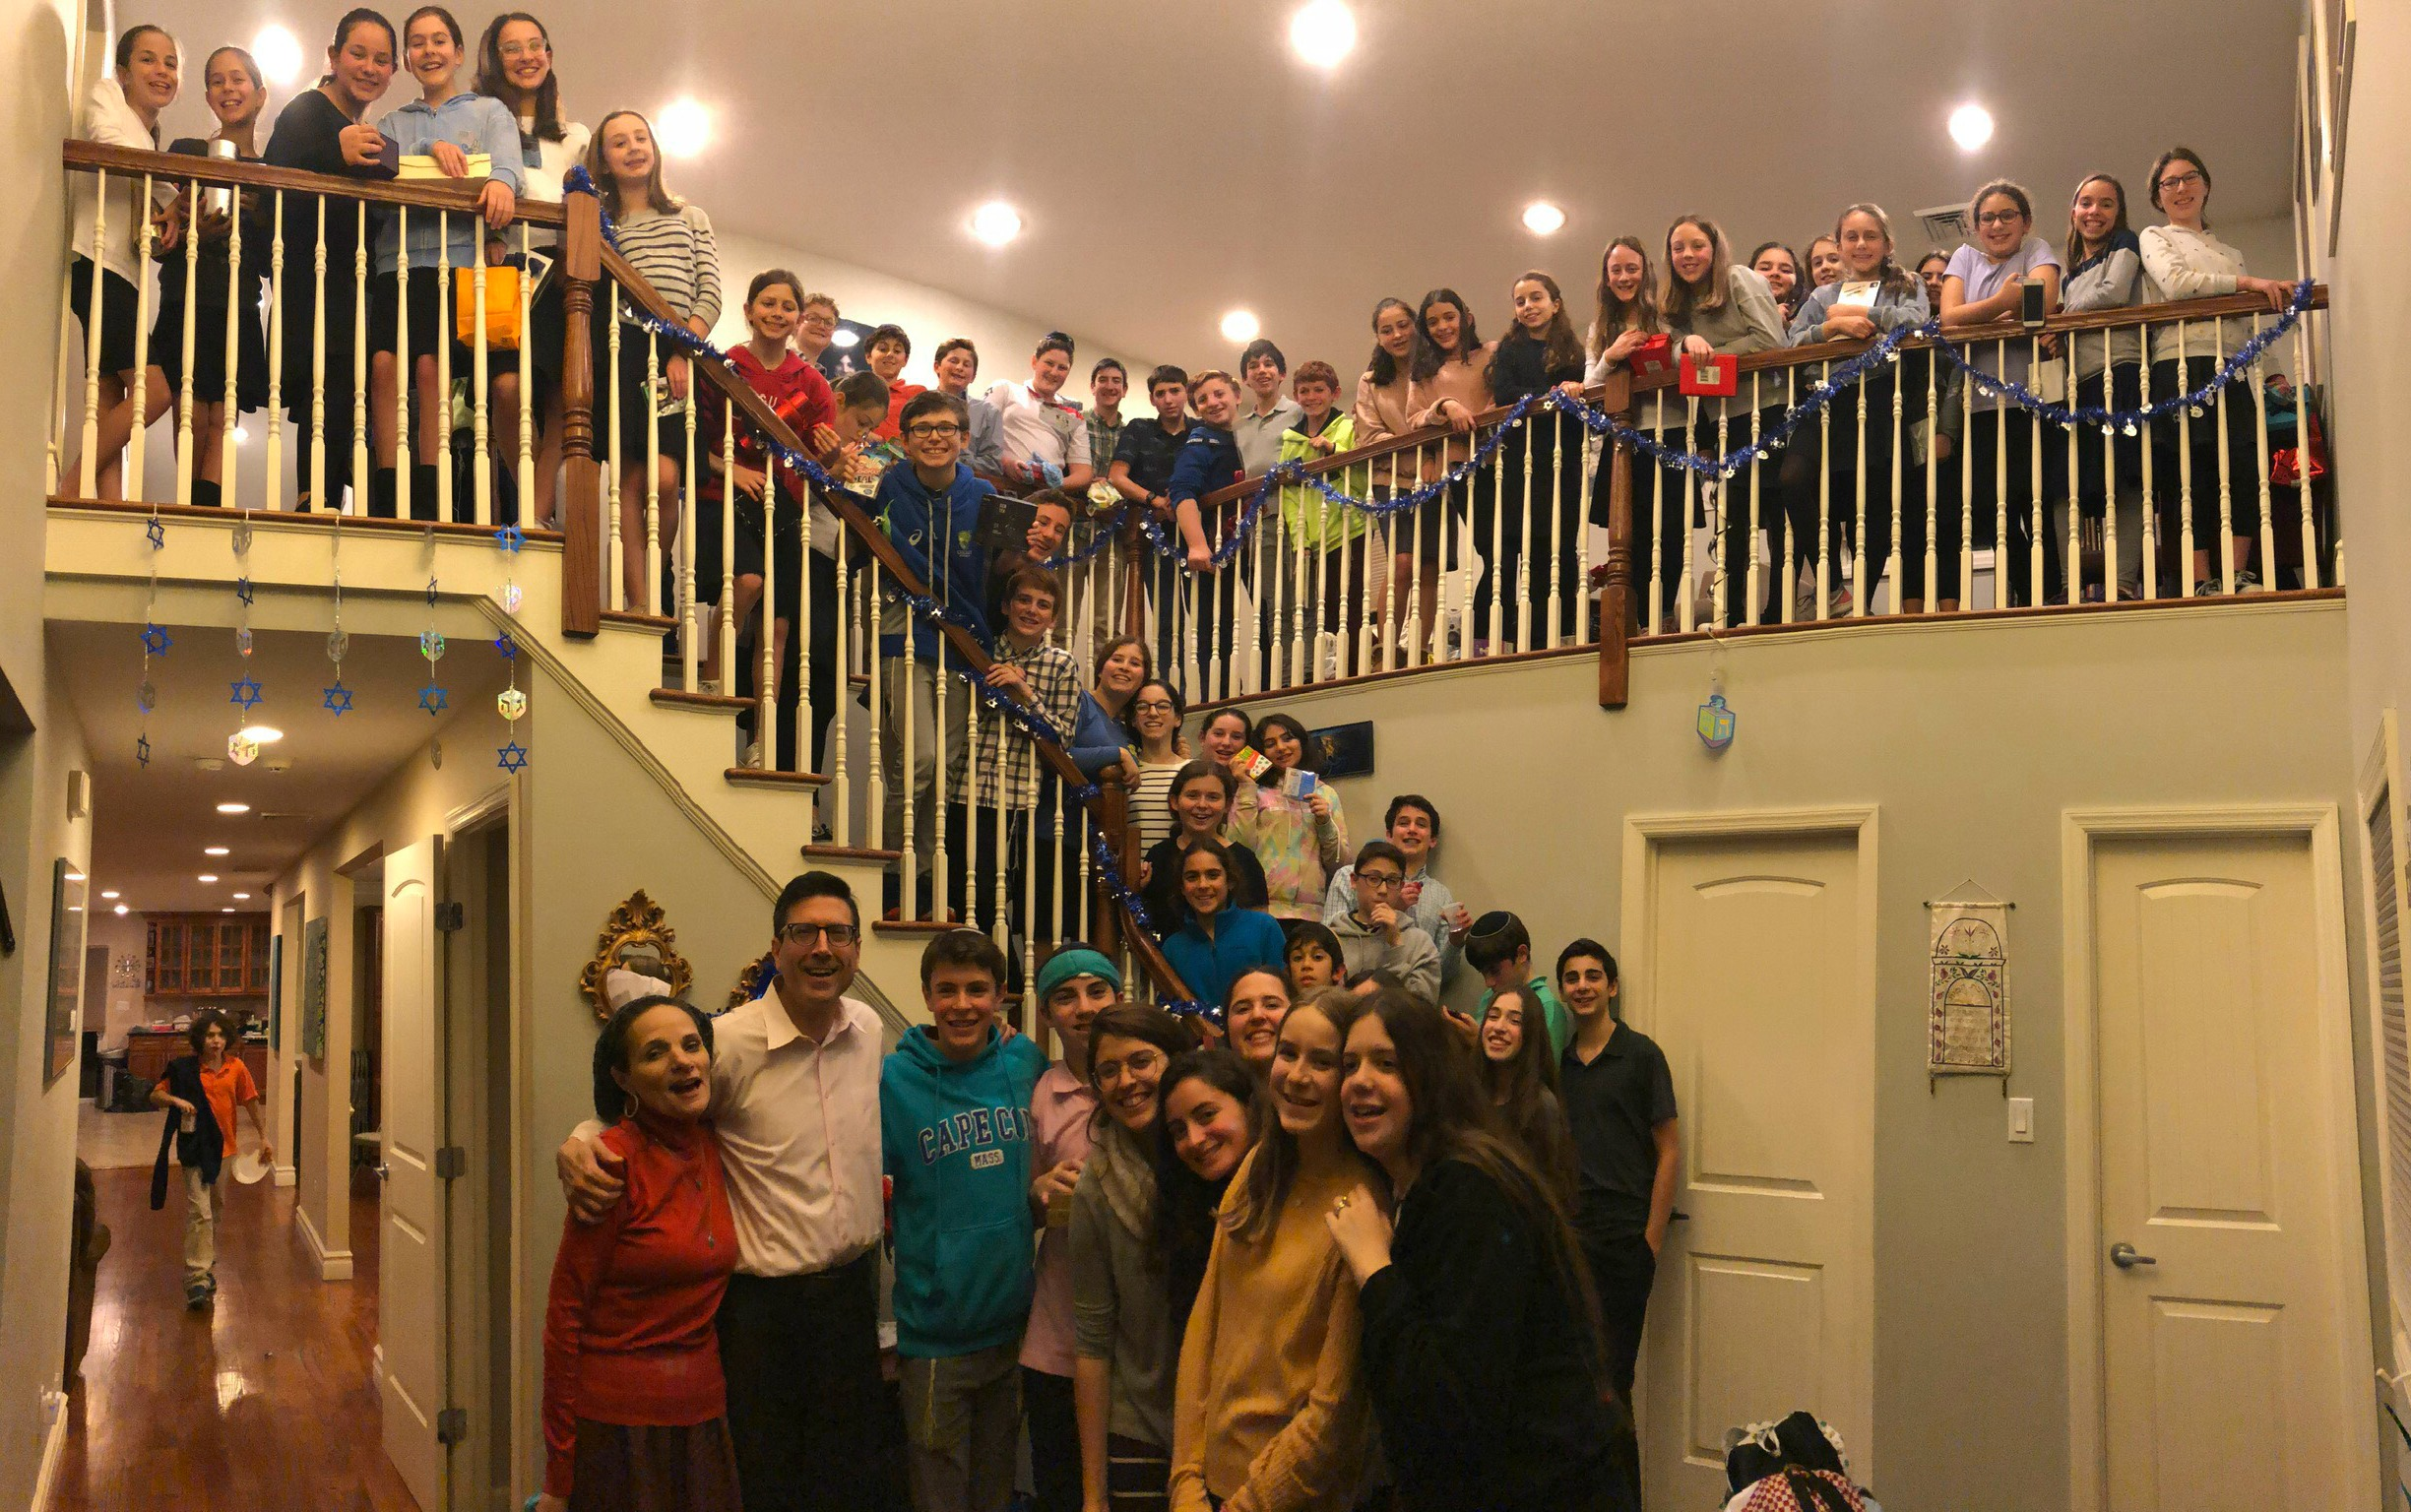 Current SAR Academy students celebrating Chanukah at the home of their teacher, Rabbi Steven Moskowitz AC '79